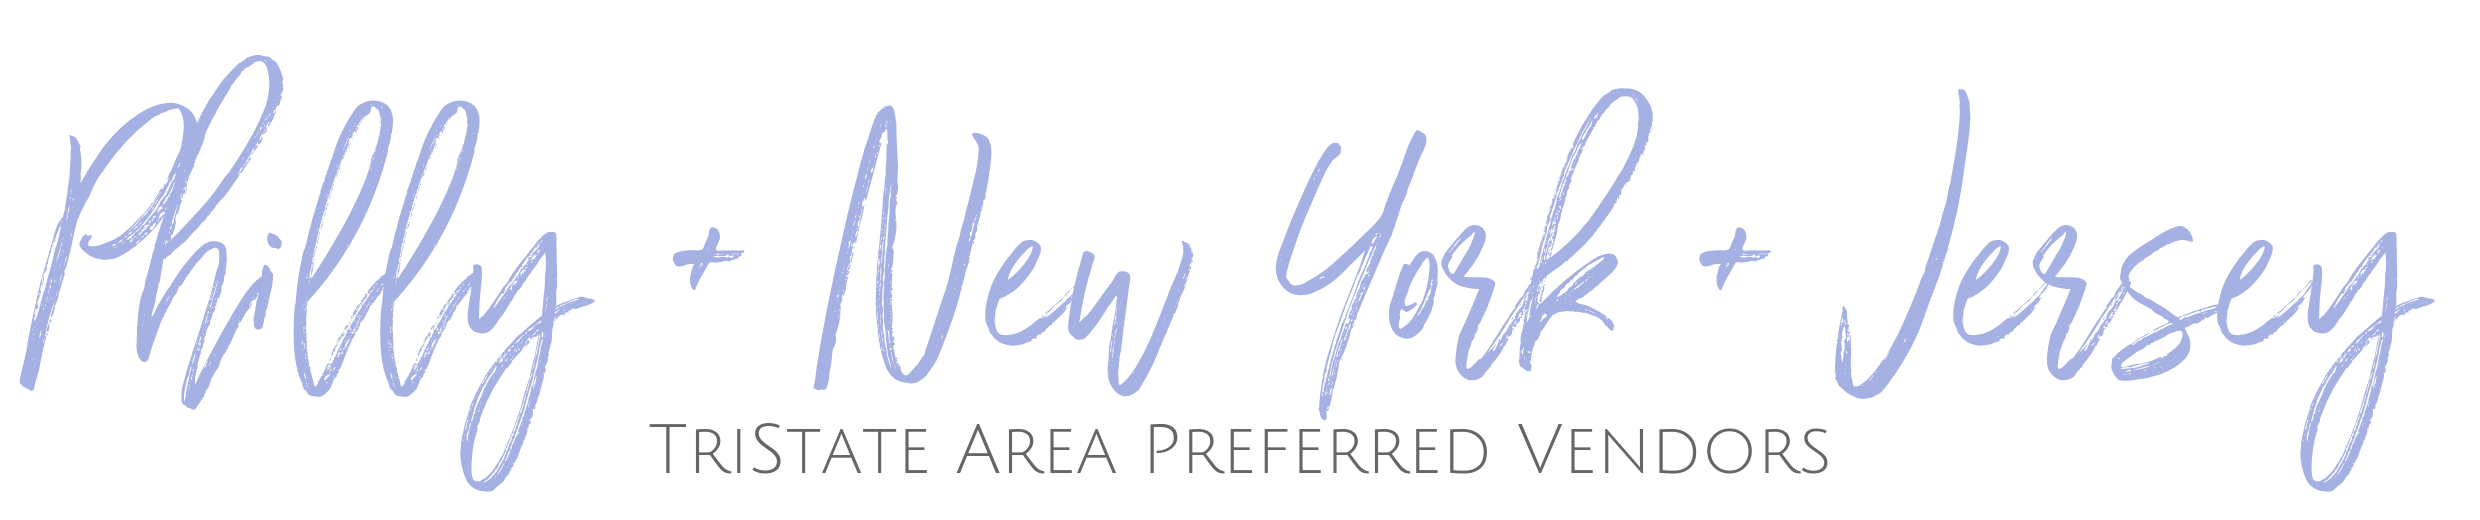 philly, new york, new jersey preferred wedding planner vendors - scarlet plan & design.png